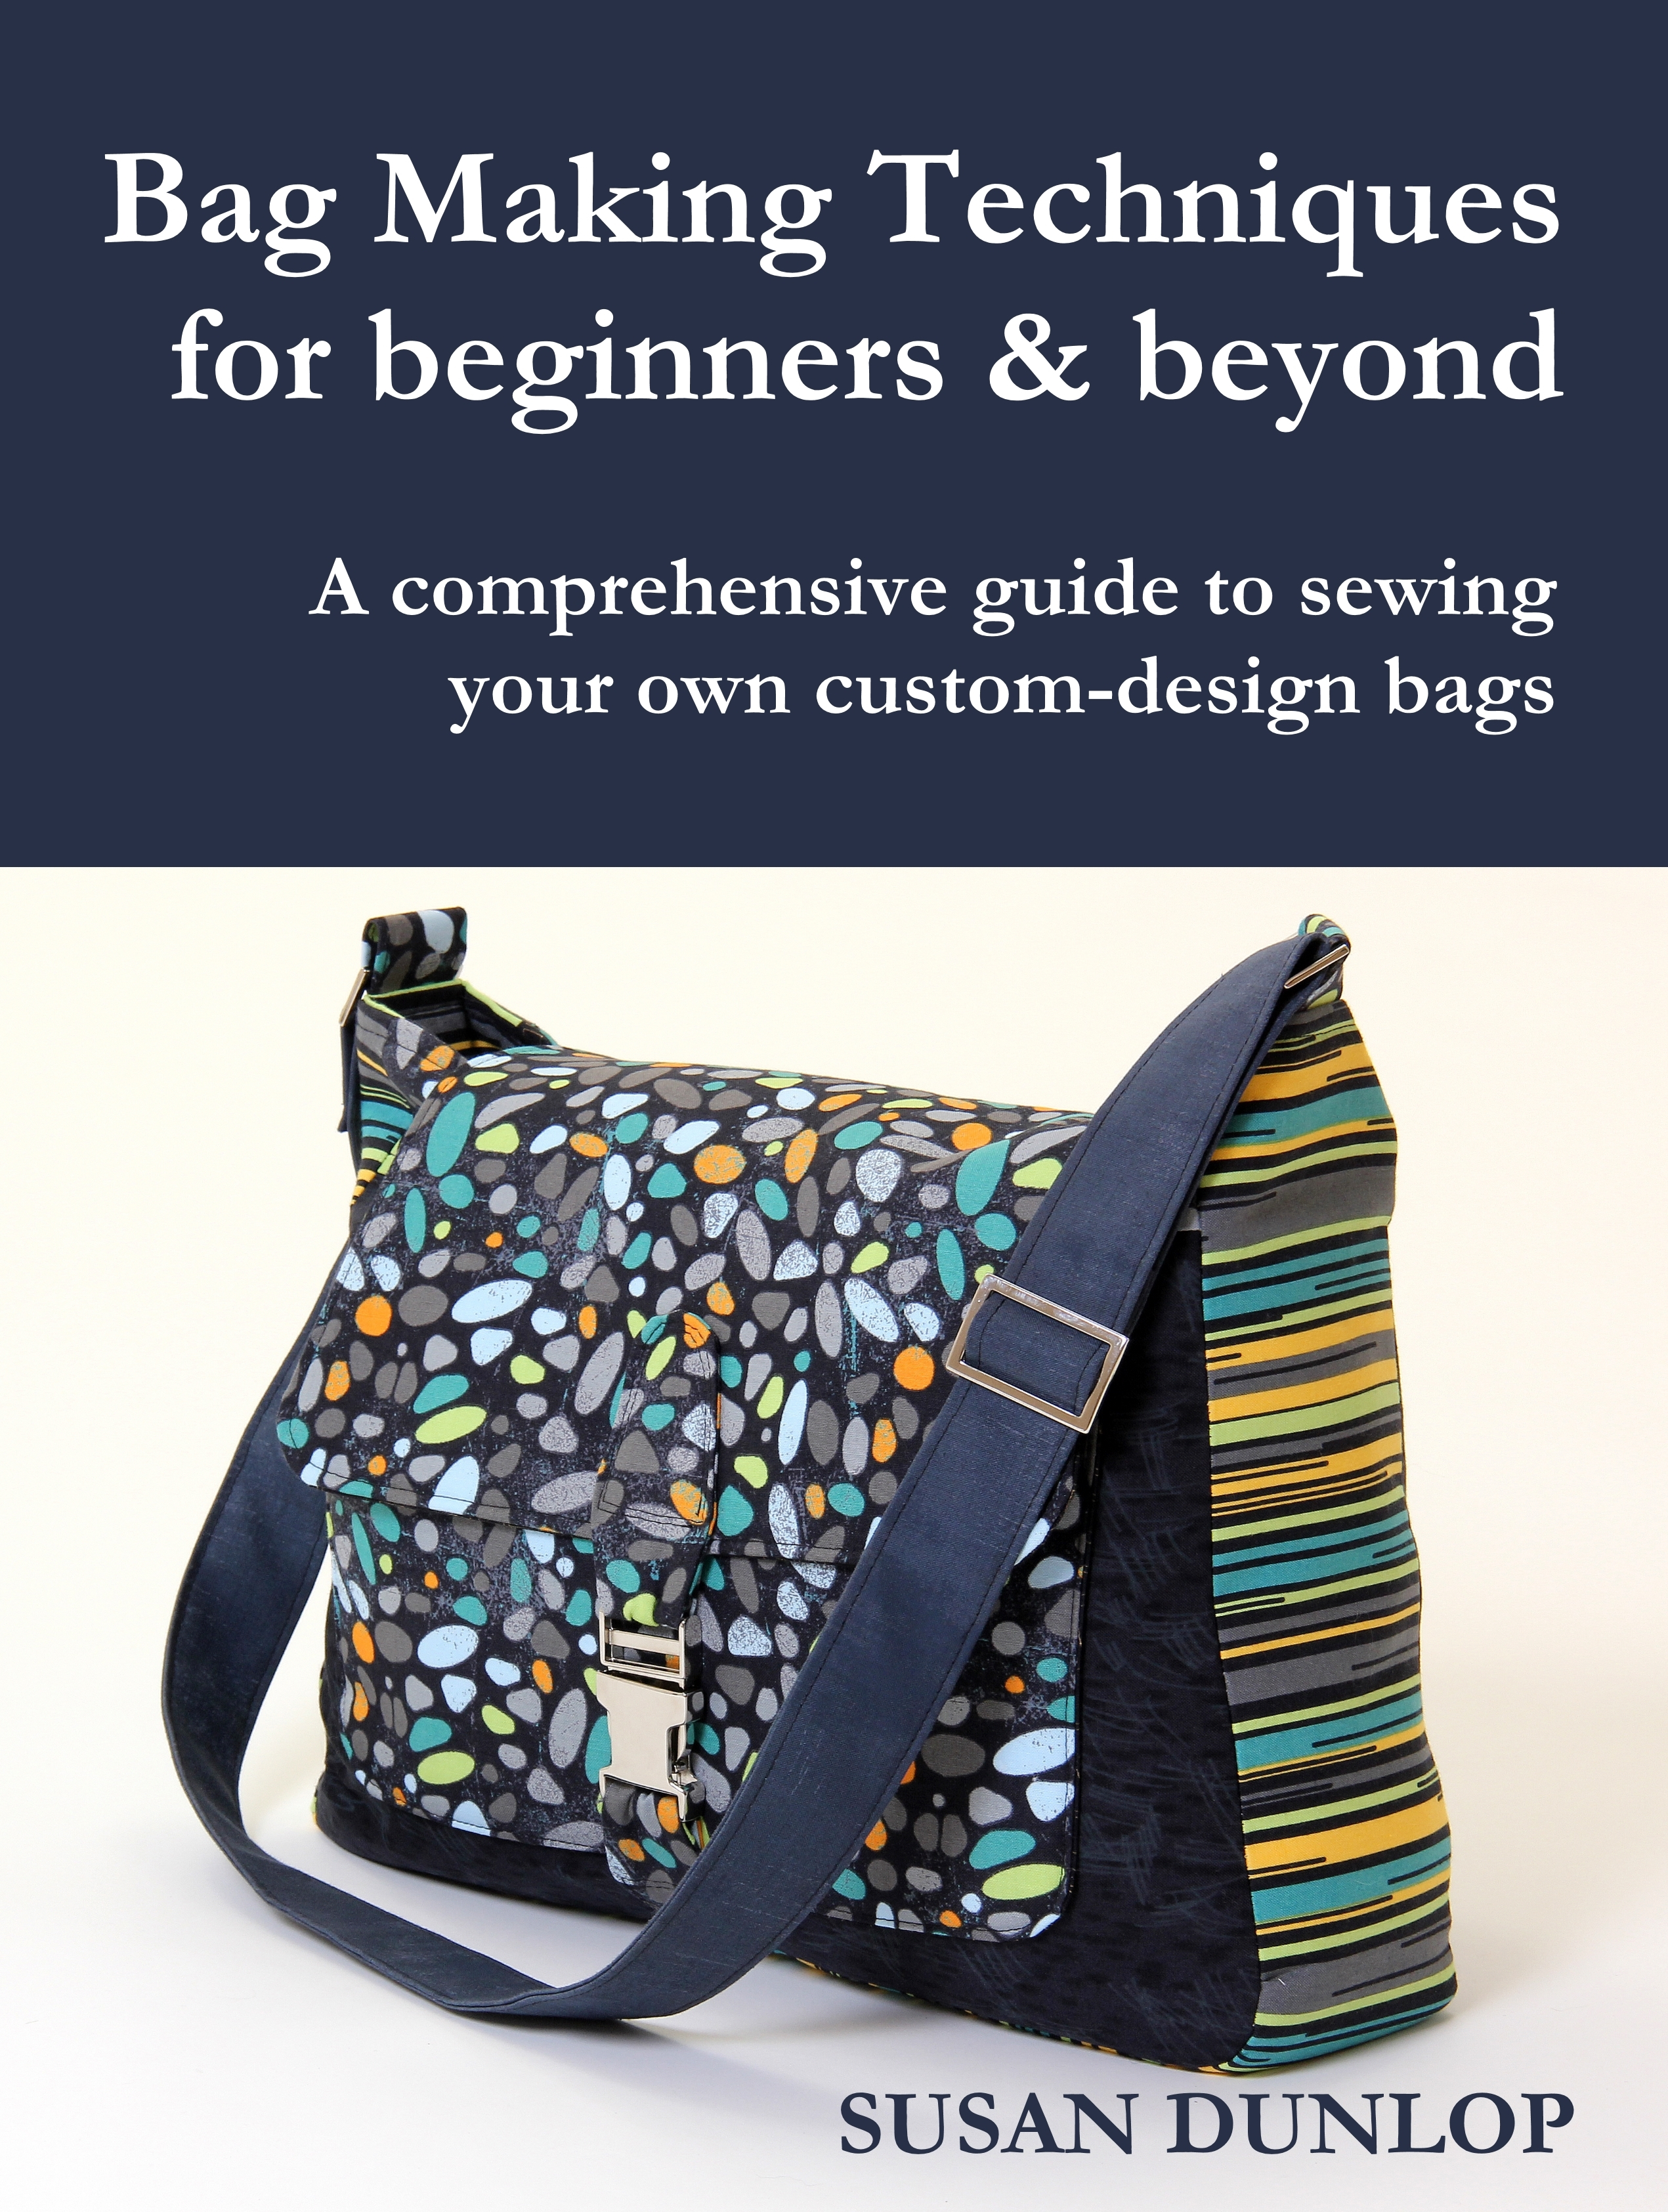 Bag Making Techniques for Beginners & Beyond Kindle Book Cover